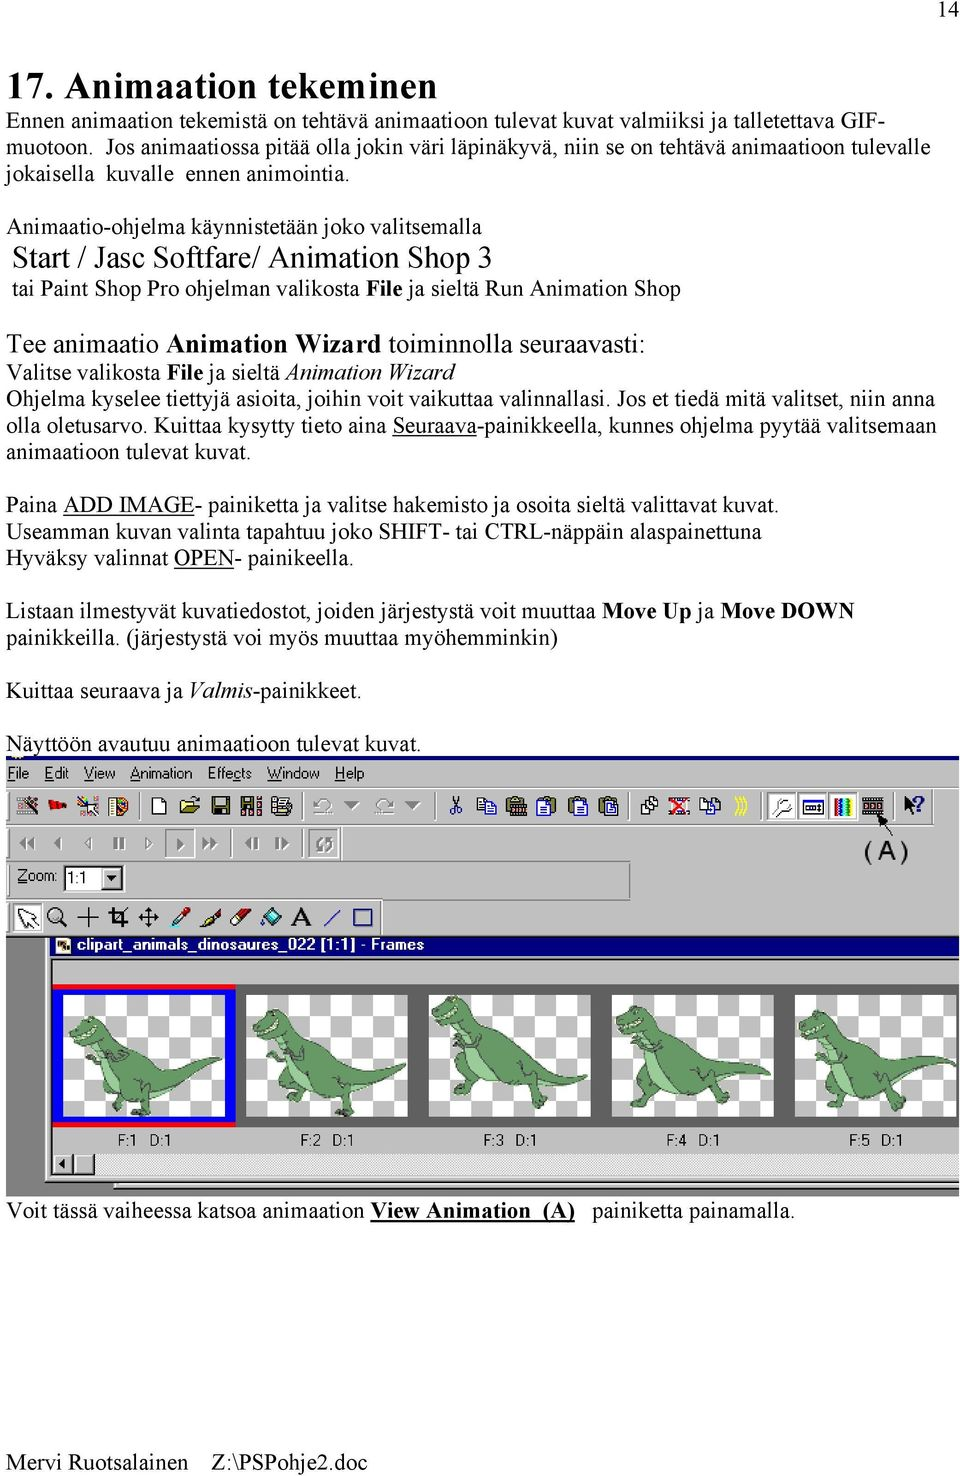 Animaatio-ohjelma käynnistetään joko valitsemalla Start / Jasc Softfare/ Animation Shop 3 tai Paint Shop Pro ohjelman valikosta File ja sieltä Run Animation Shop Tee animaatio Animation Wizard